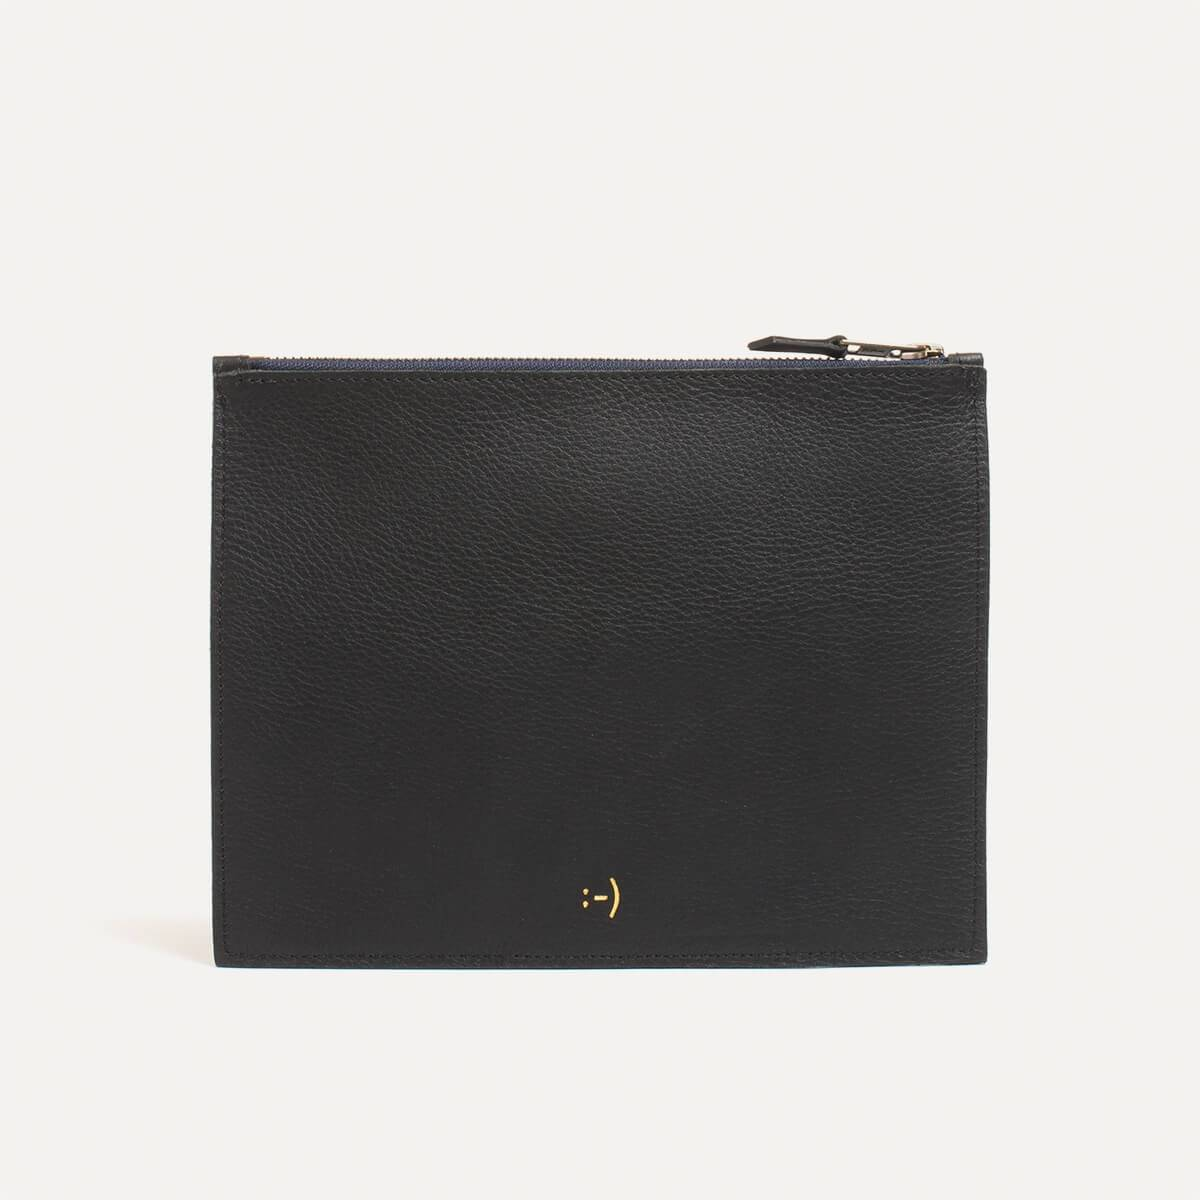 Leather Pouch COSMO M - Black (image n°1)